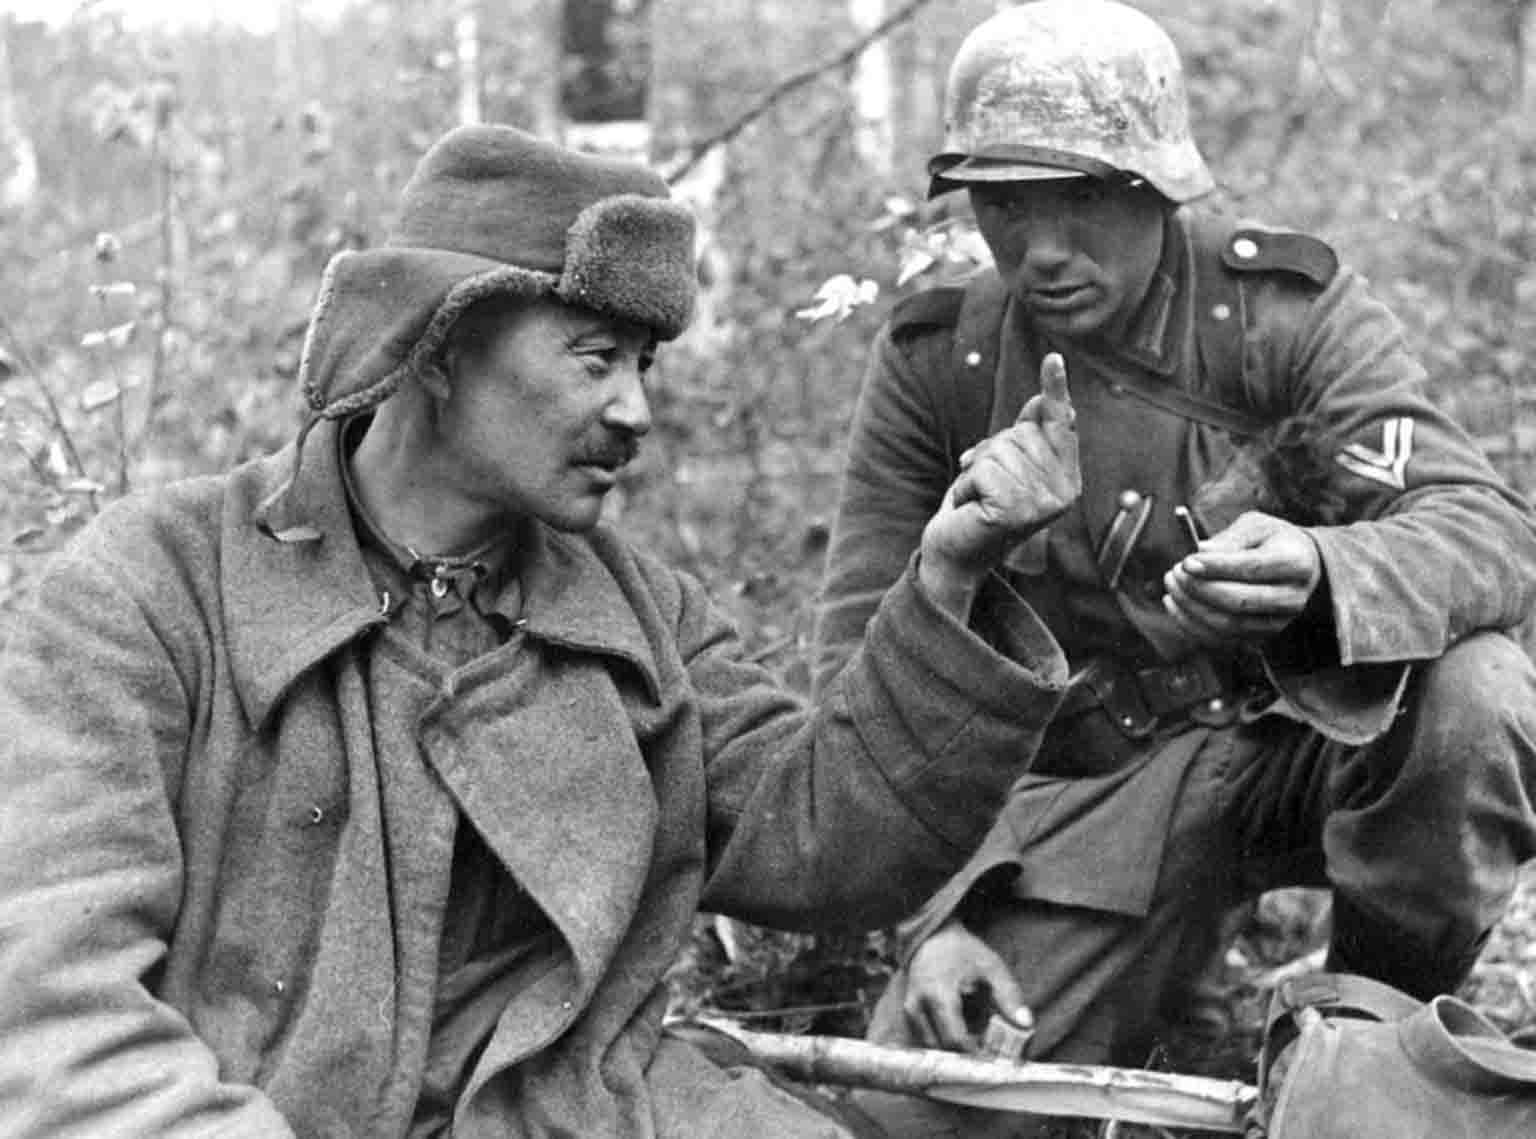 Captured Soviet soldier